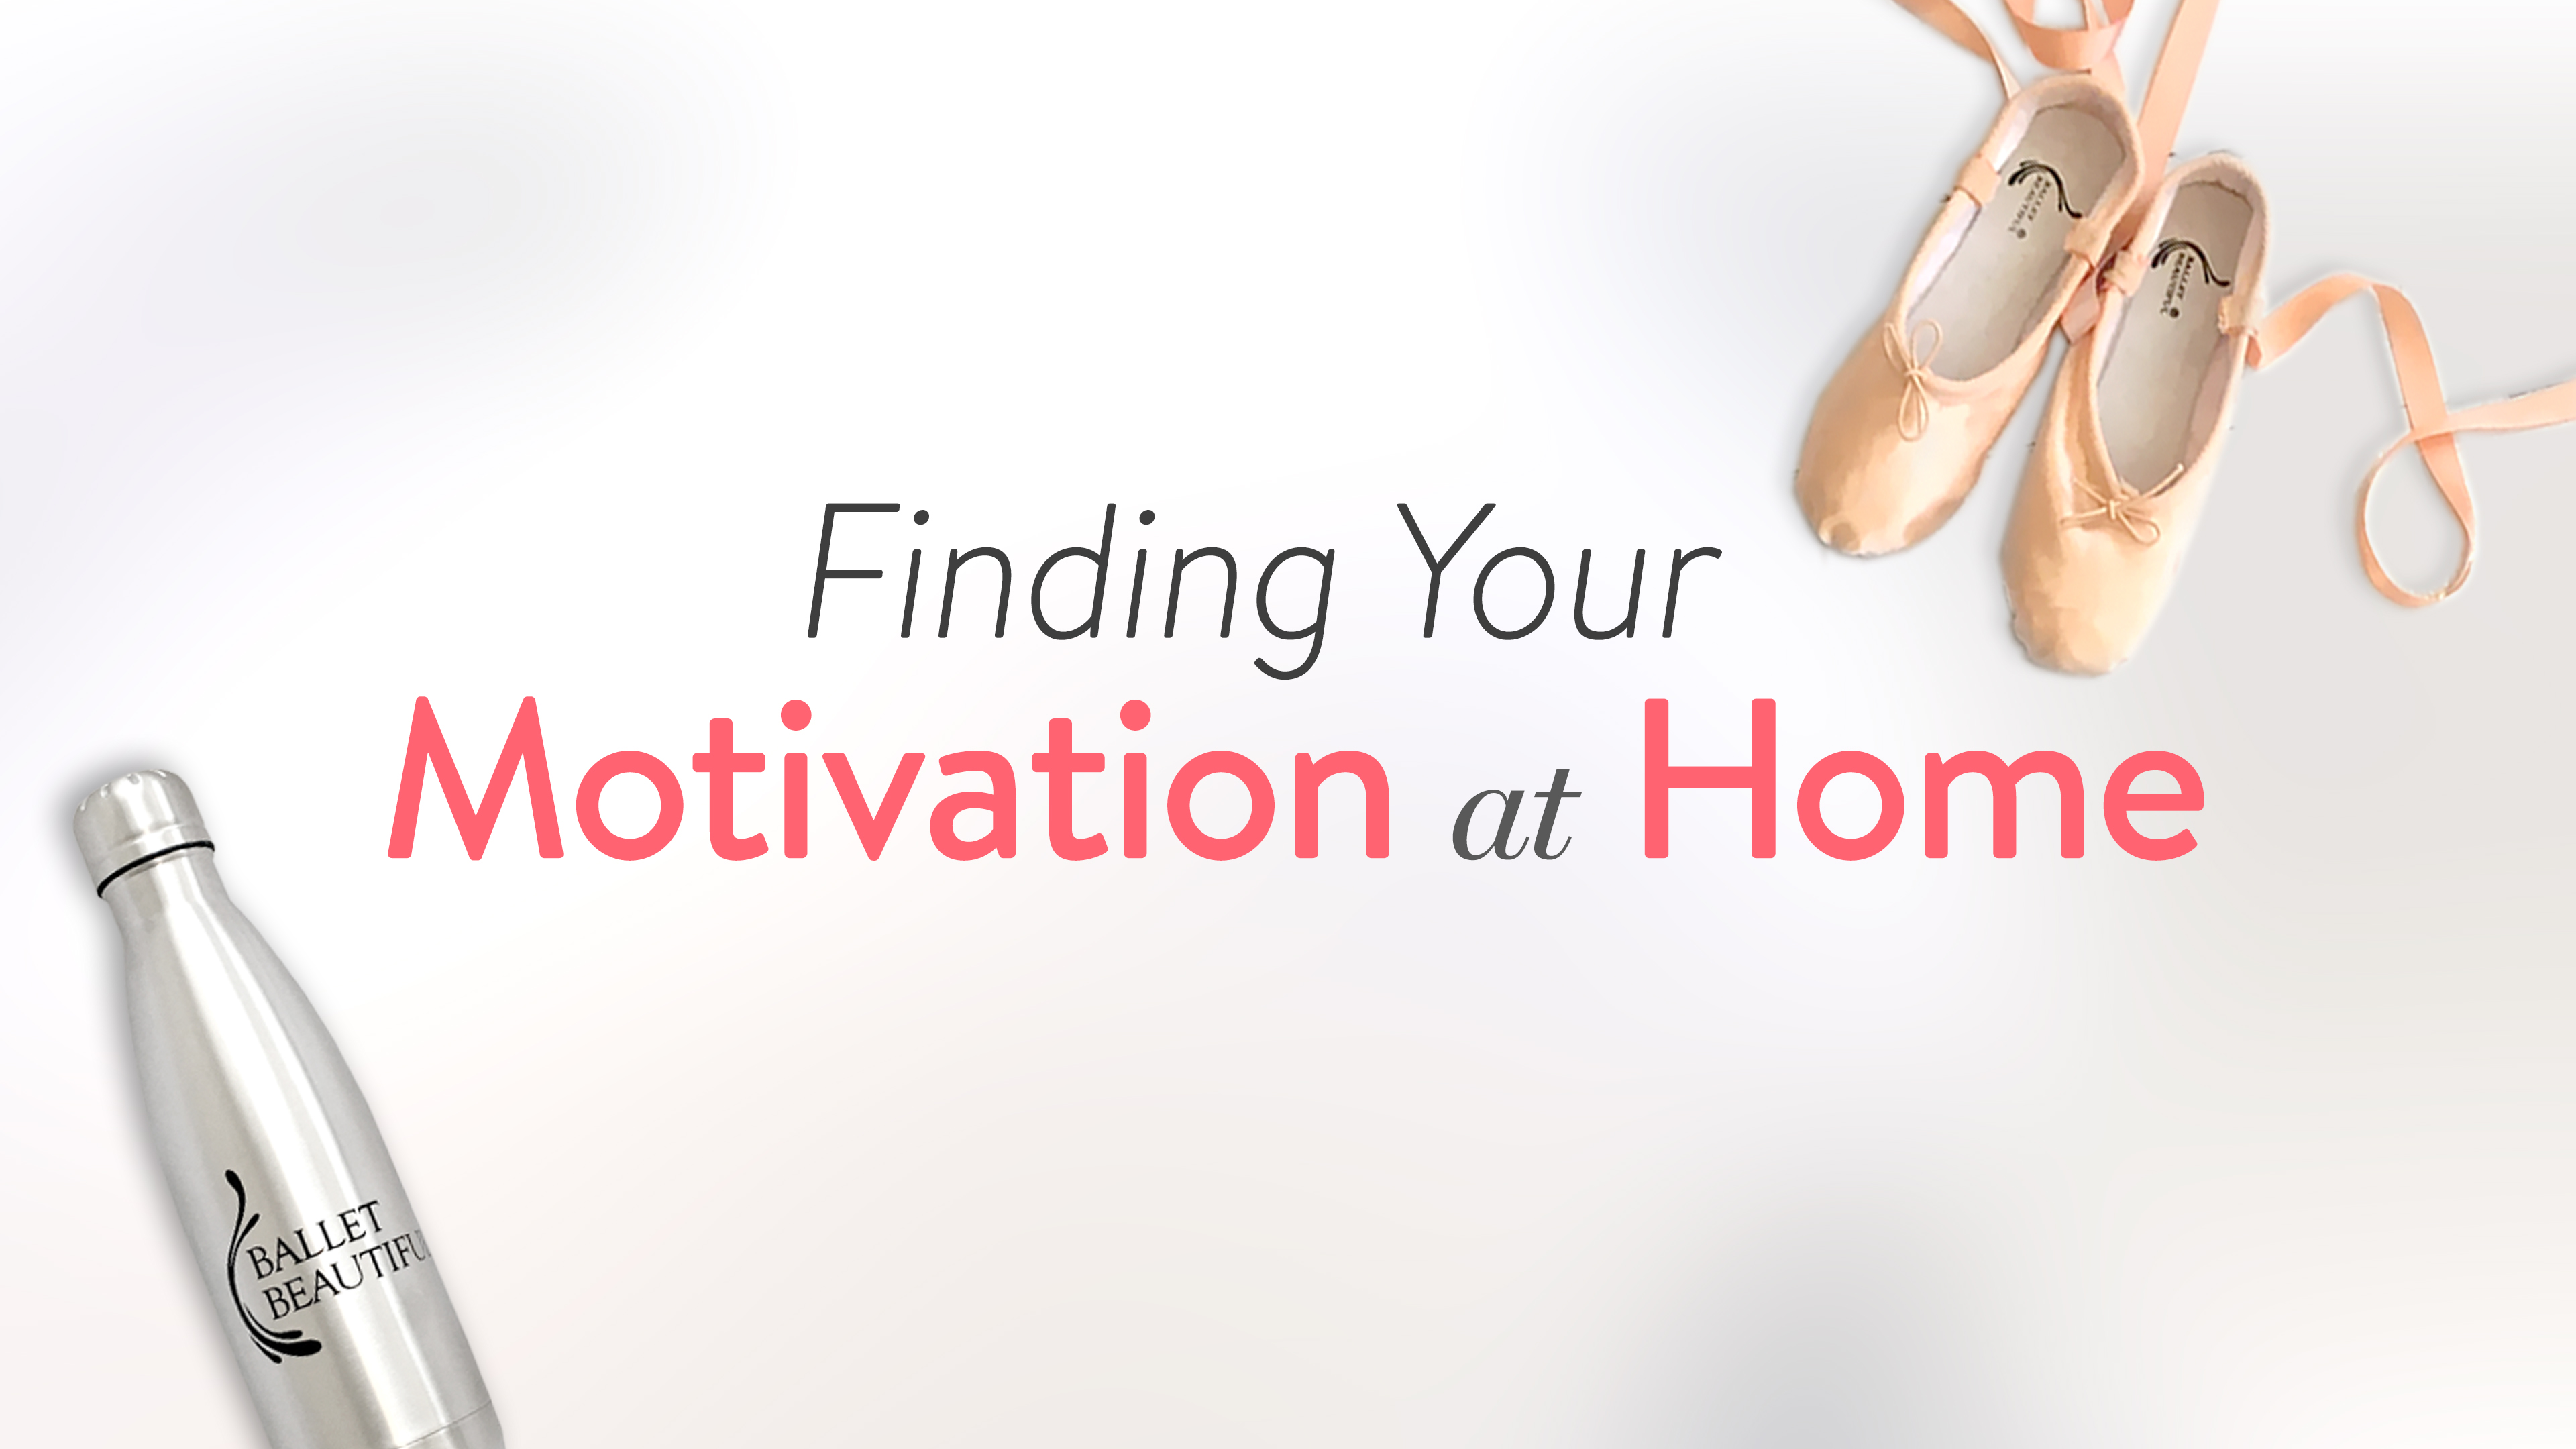 Finding Your Motivation at Home